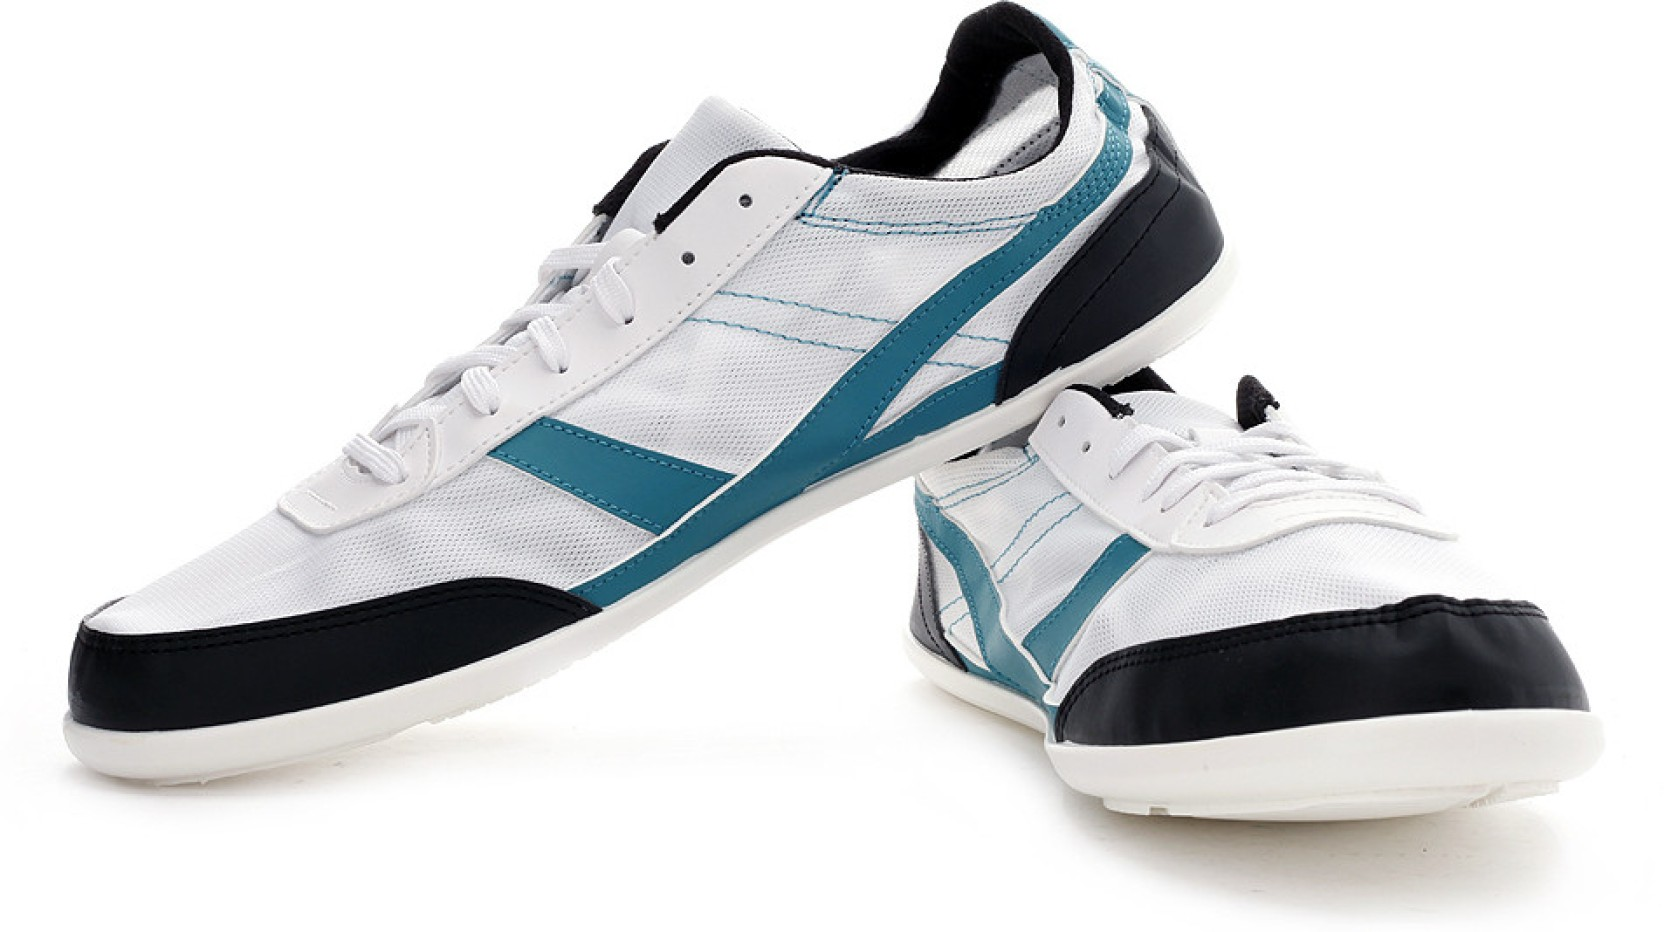 Walking Shoes Online India